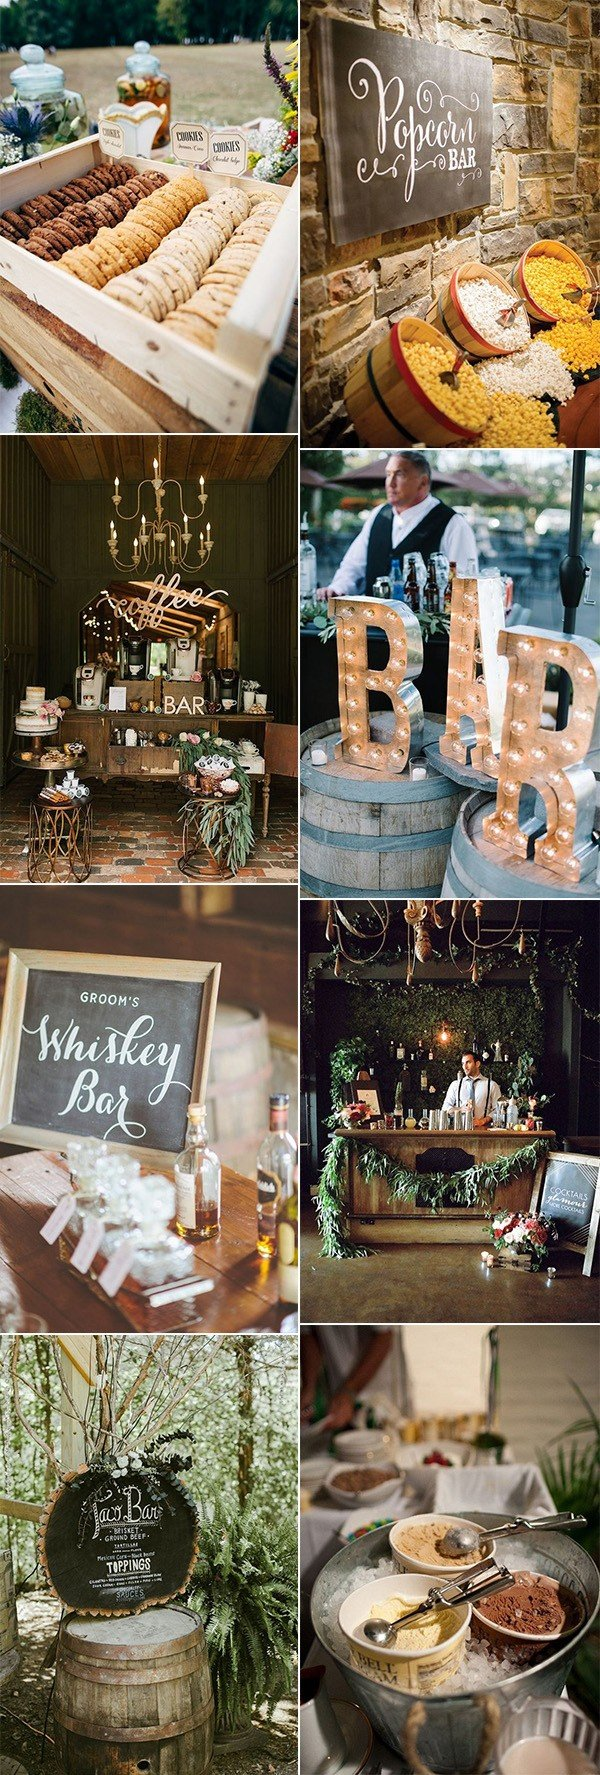 wedding reception bar for 2018 trends